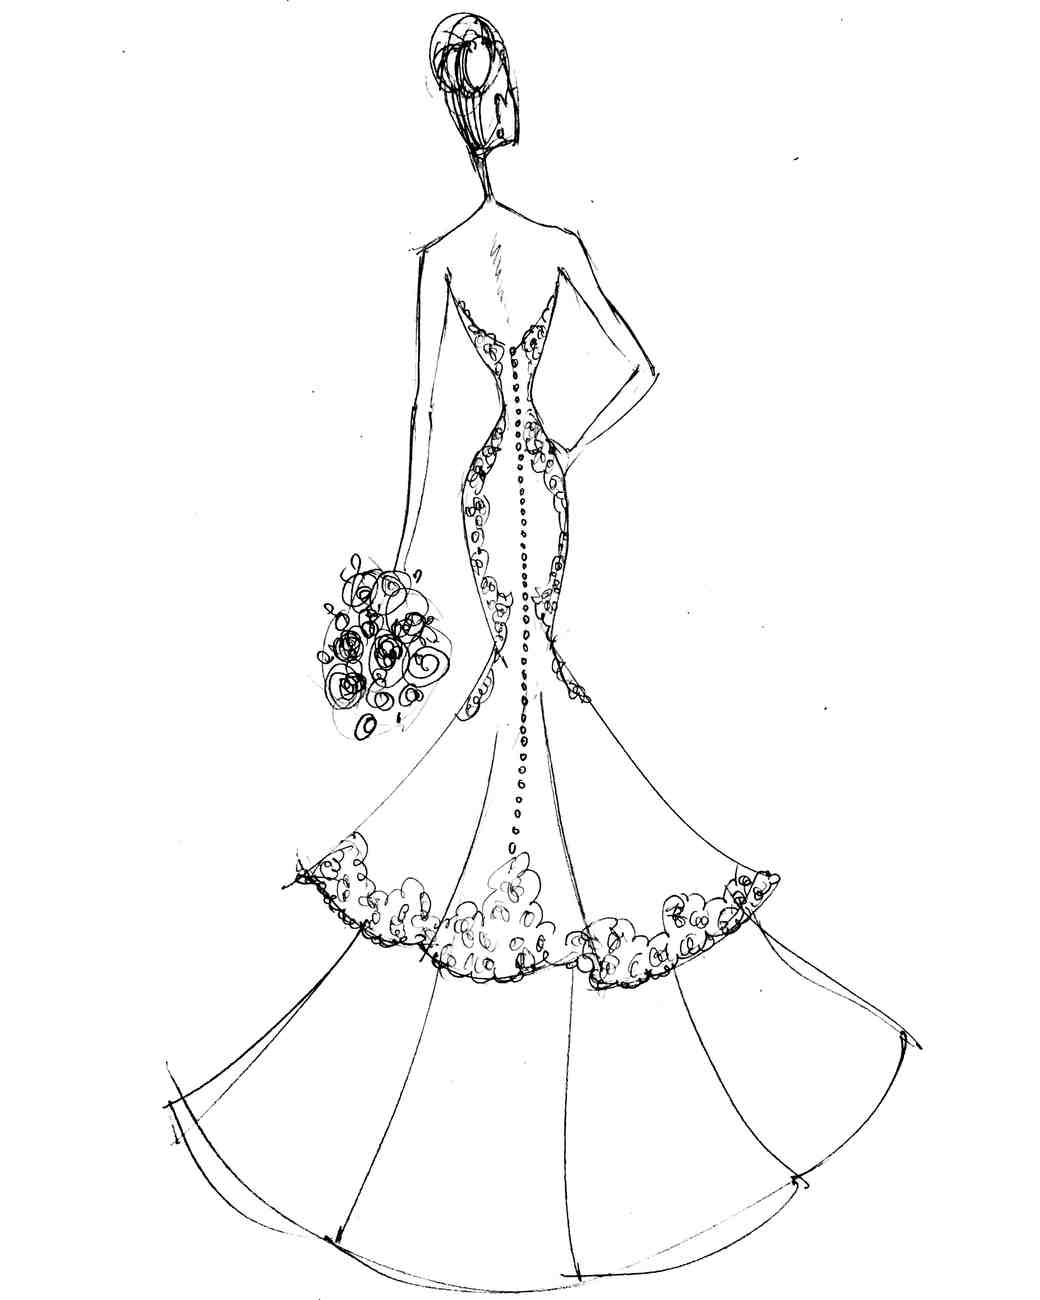 lea-ann-belter-fall-2017-exclusive-wedding-dress-sketch-0916.jpg